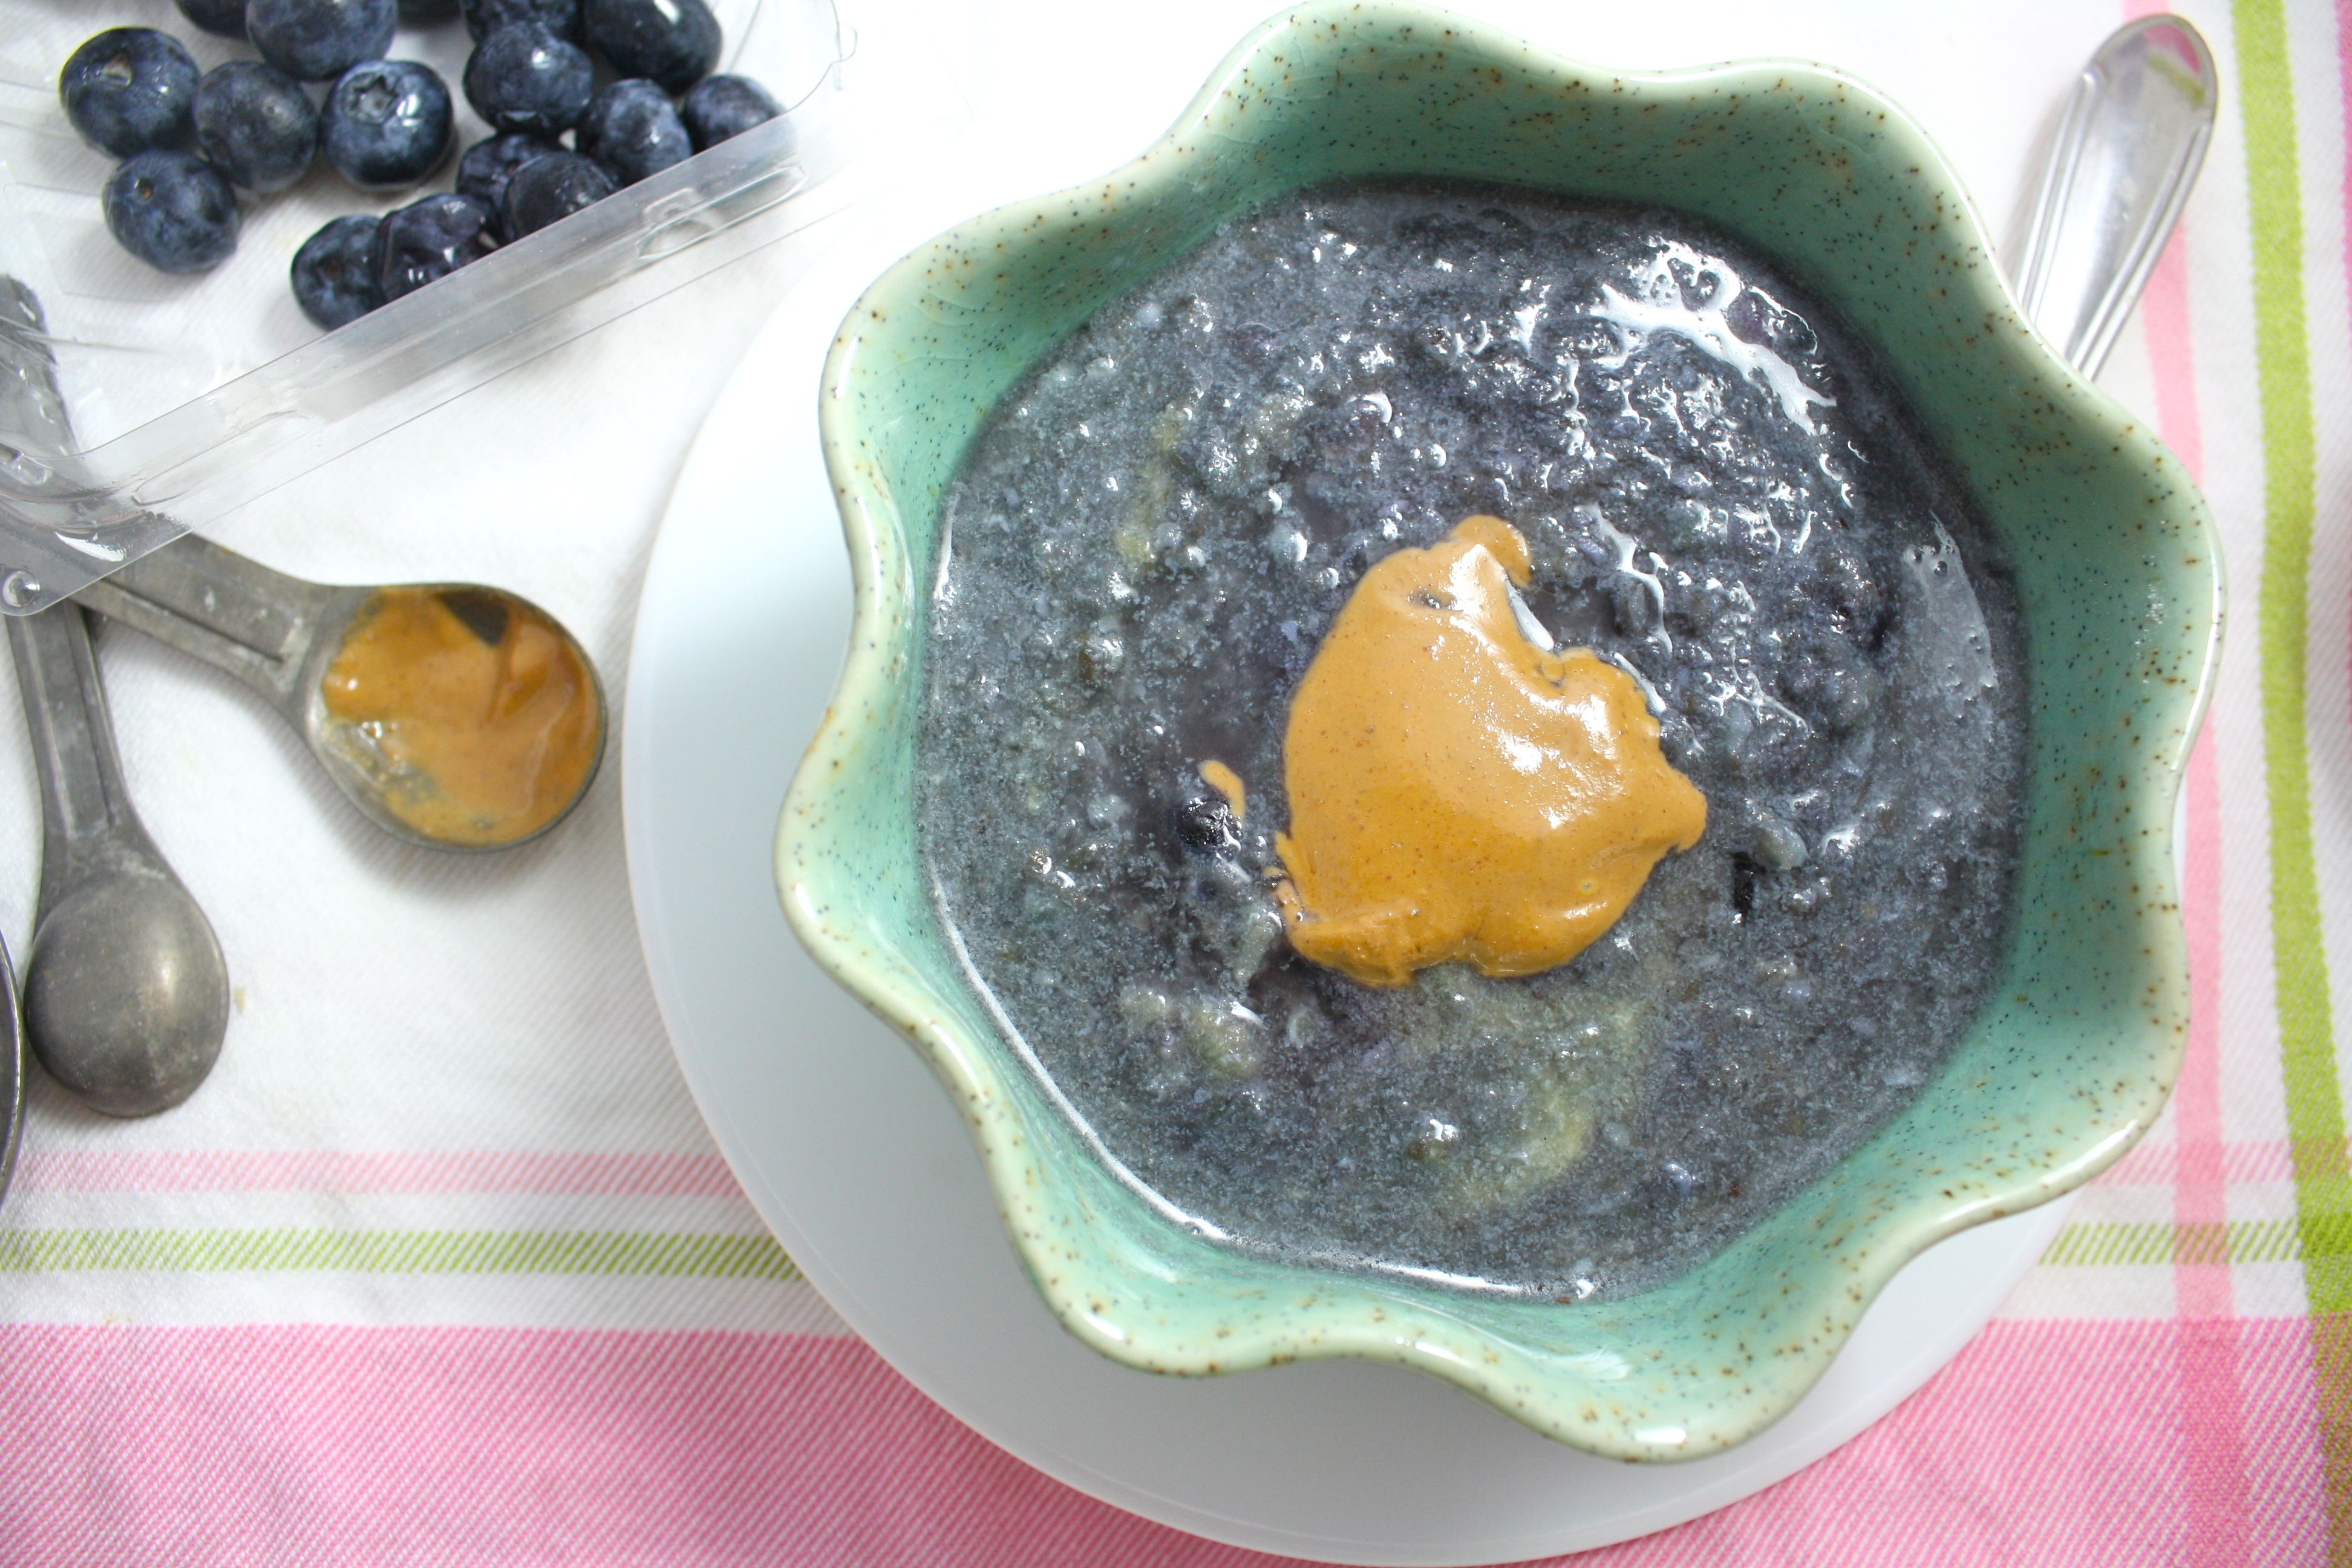 Blueberry cocomeal